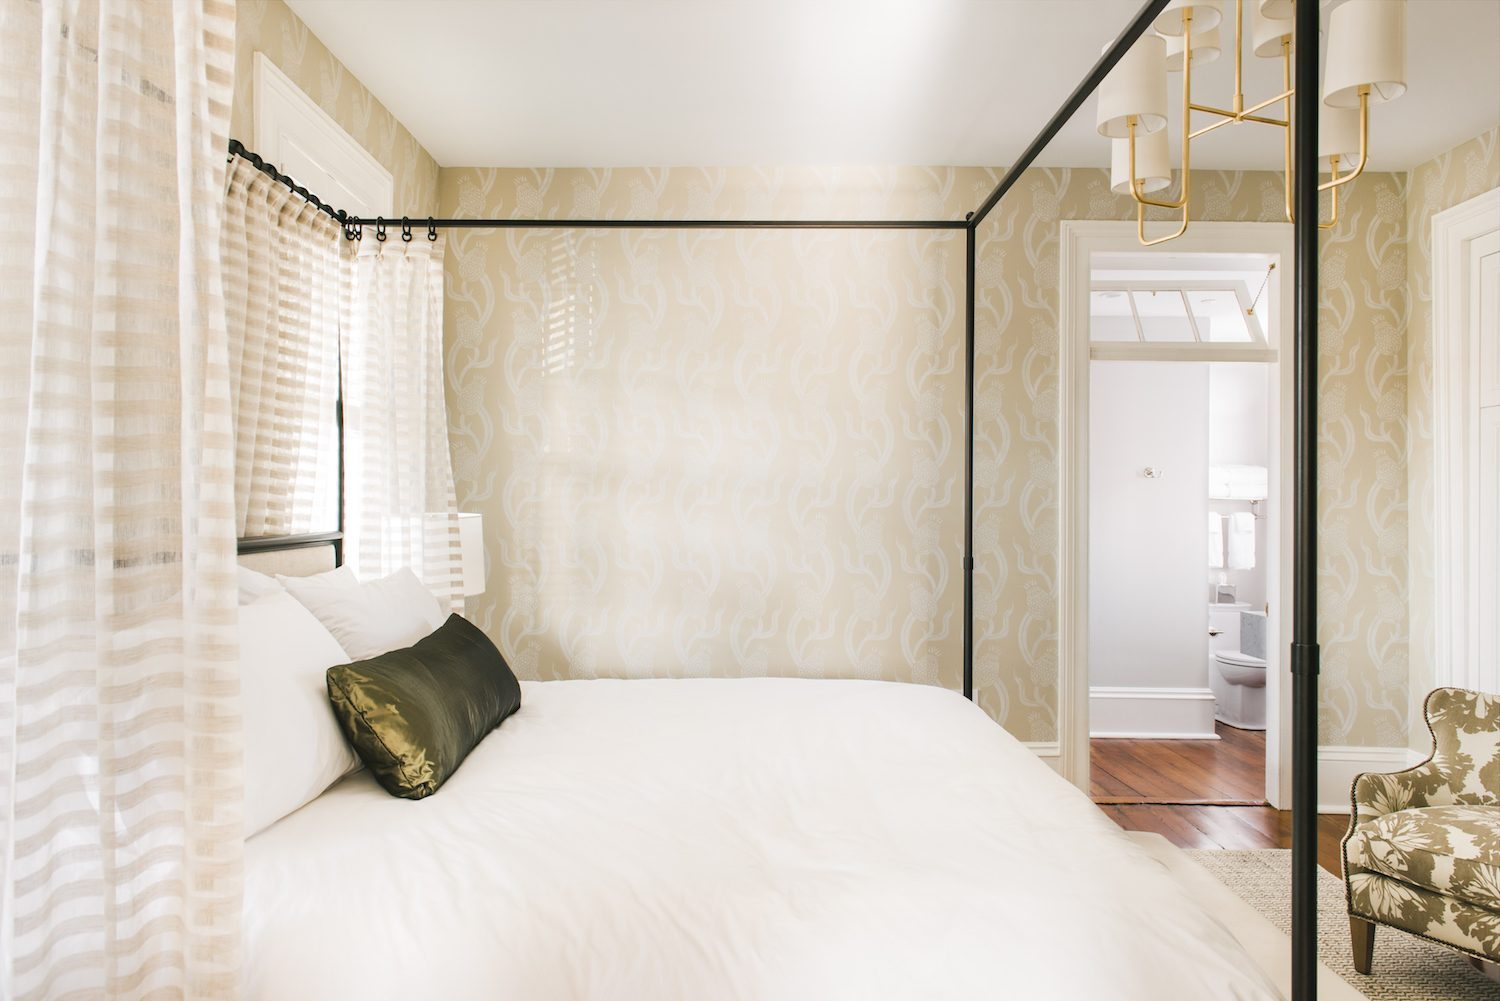 86 Cannon | A Boutique Inn by B. Berry Interiors